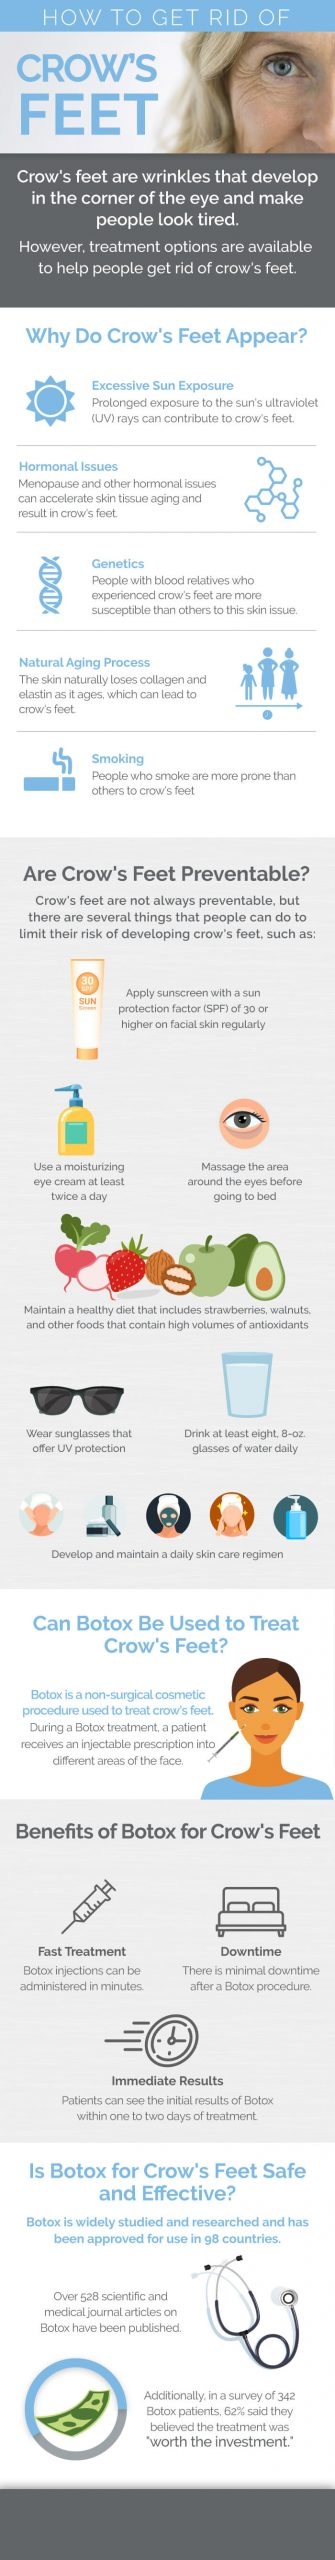 Crows Feet Treatment Options Infographic